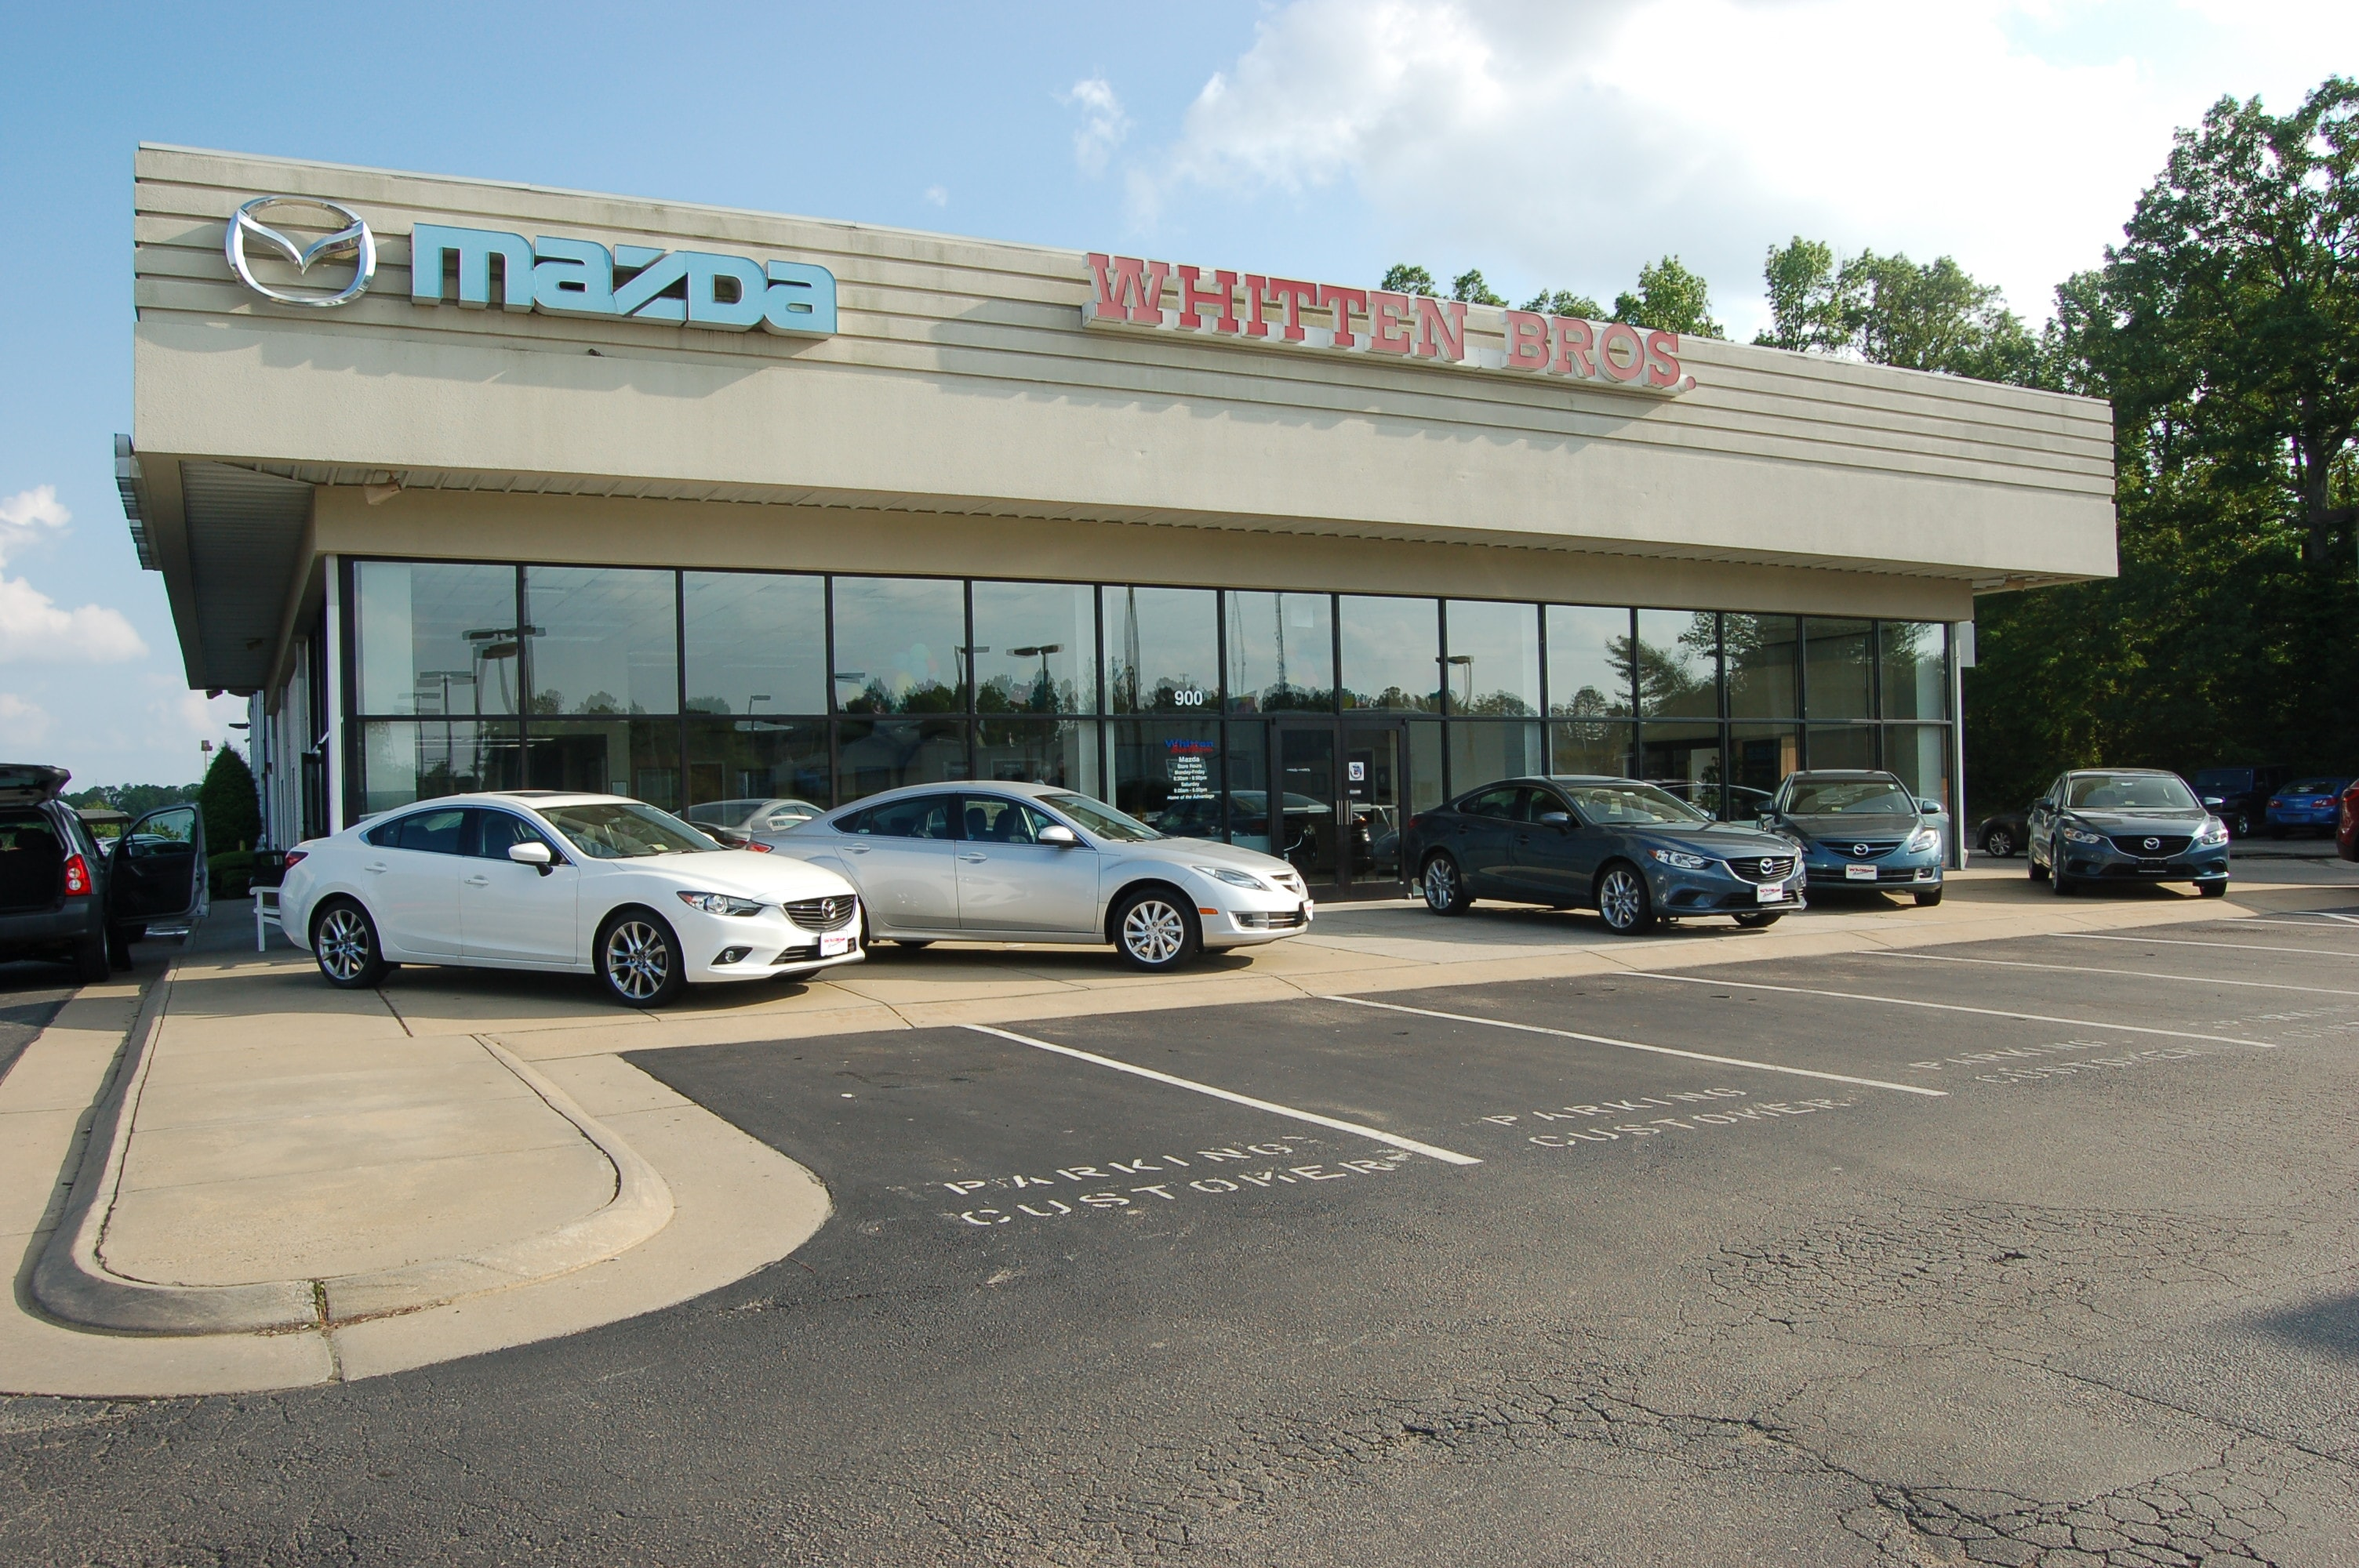 whitten brothers new used car dealership in richmond va autos post. Black Bedroom Furniture Sets. Home Design Ideas